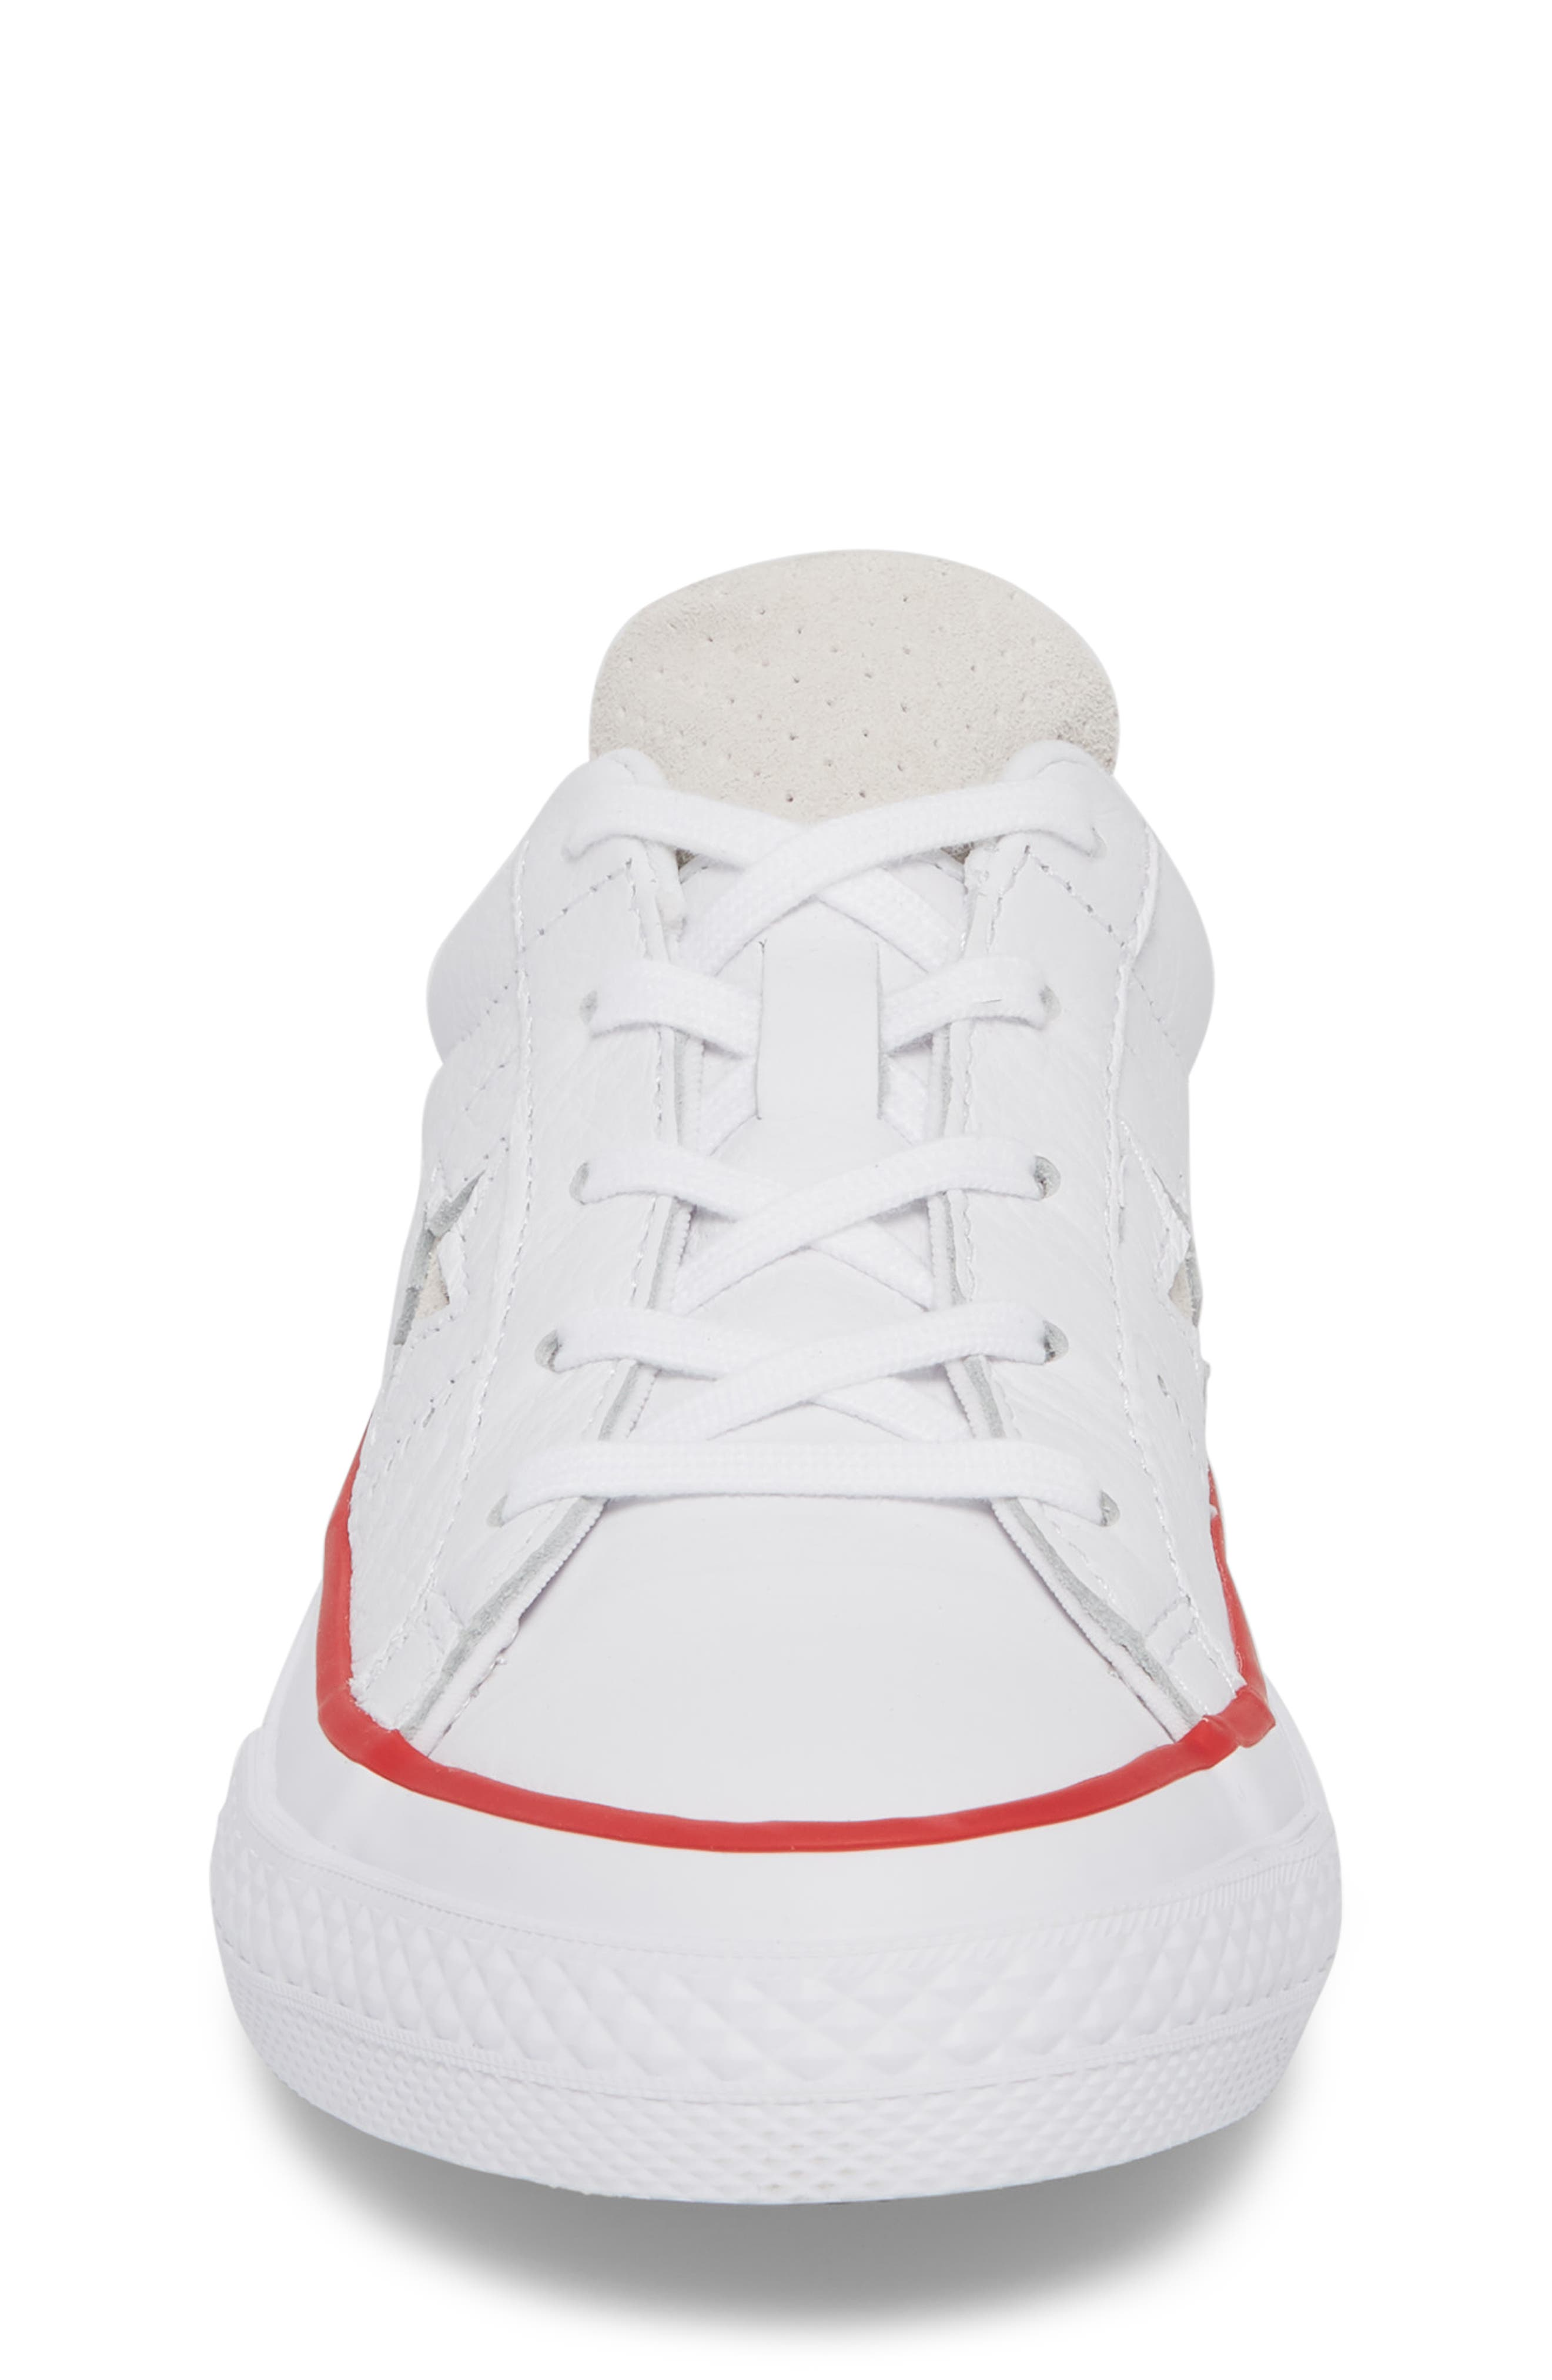 Chuck Taylor<sup>®</sup> All Star<sup>®</sup> New Heritage Oxford Sneaker,                             Alternate thumbnail 4, color,                             White